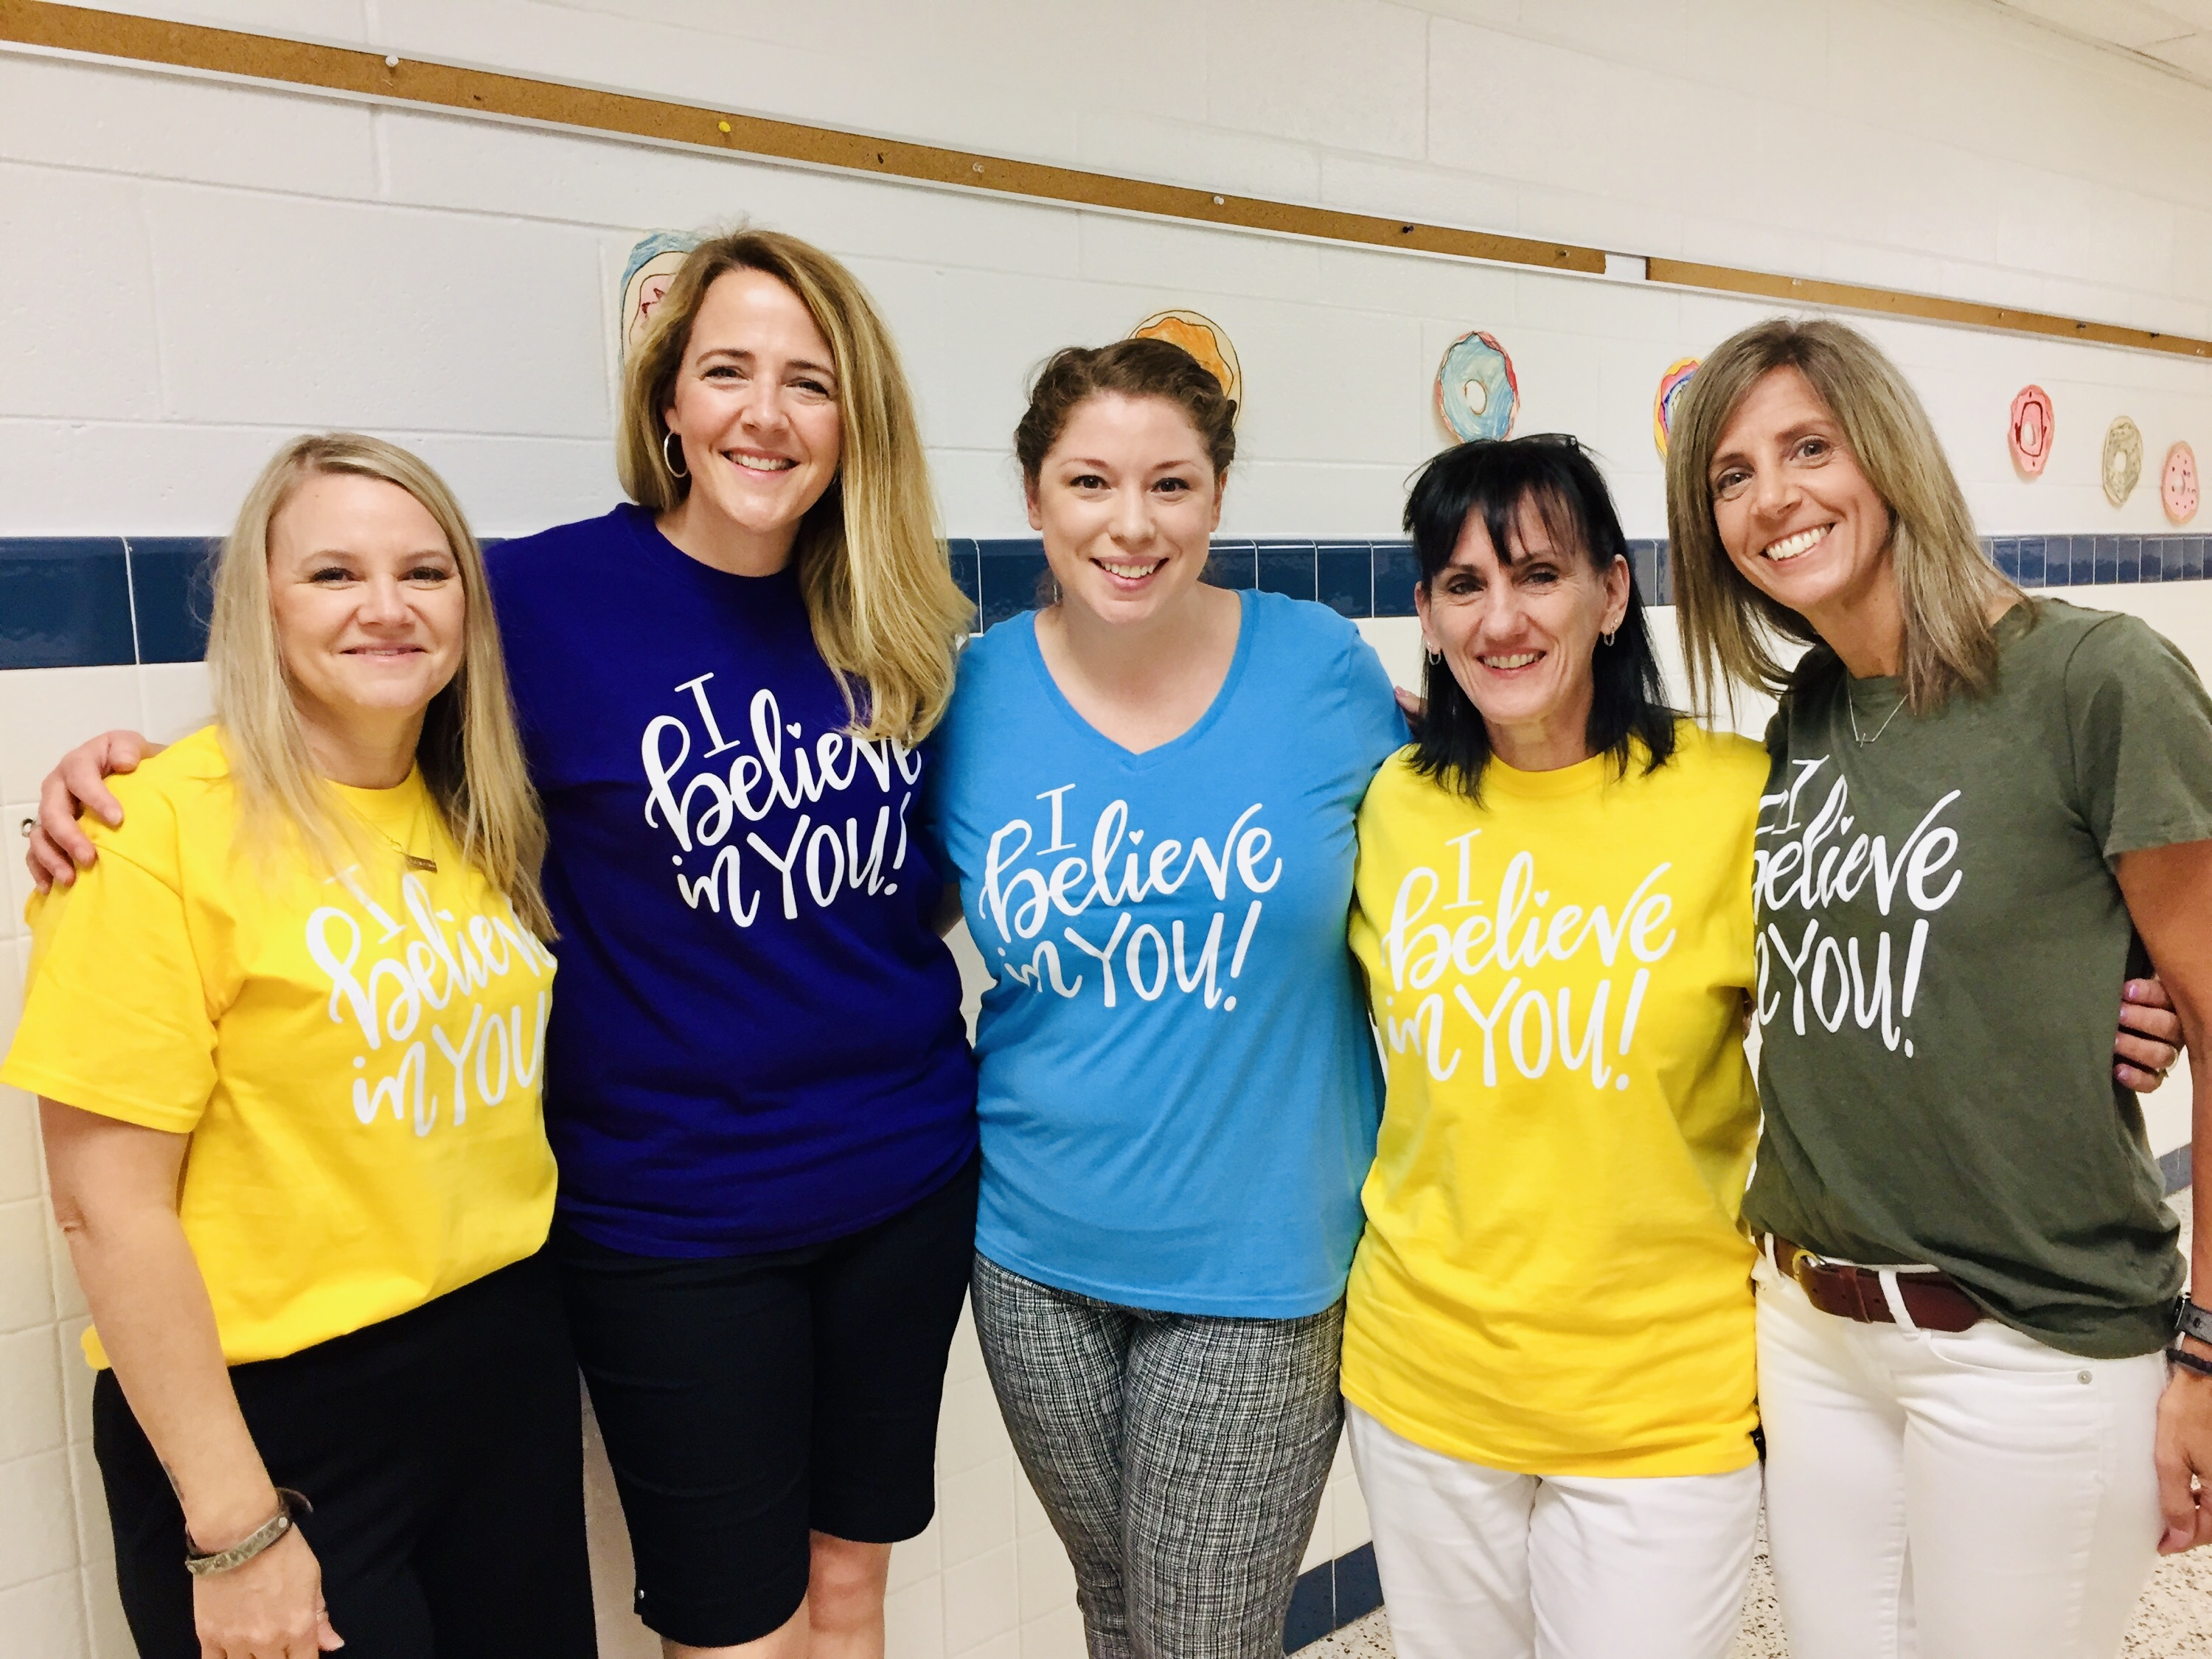 The third grade team at Kempsville Elementary- Jen Lepley, Jennifer Hofler, Meghan Alley, Joy Drumm, and Julie Gray- wore matching shirts supporting their students on the first day of SOL testing.